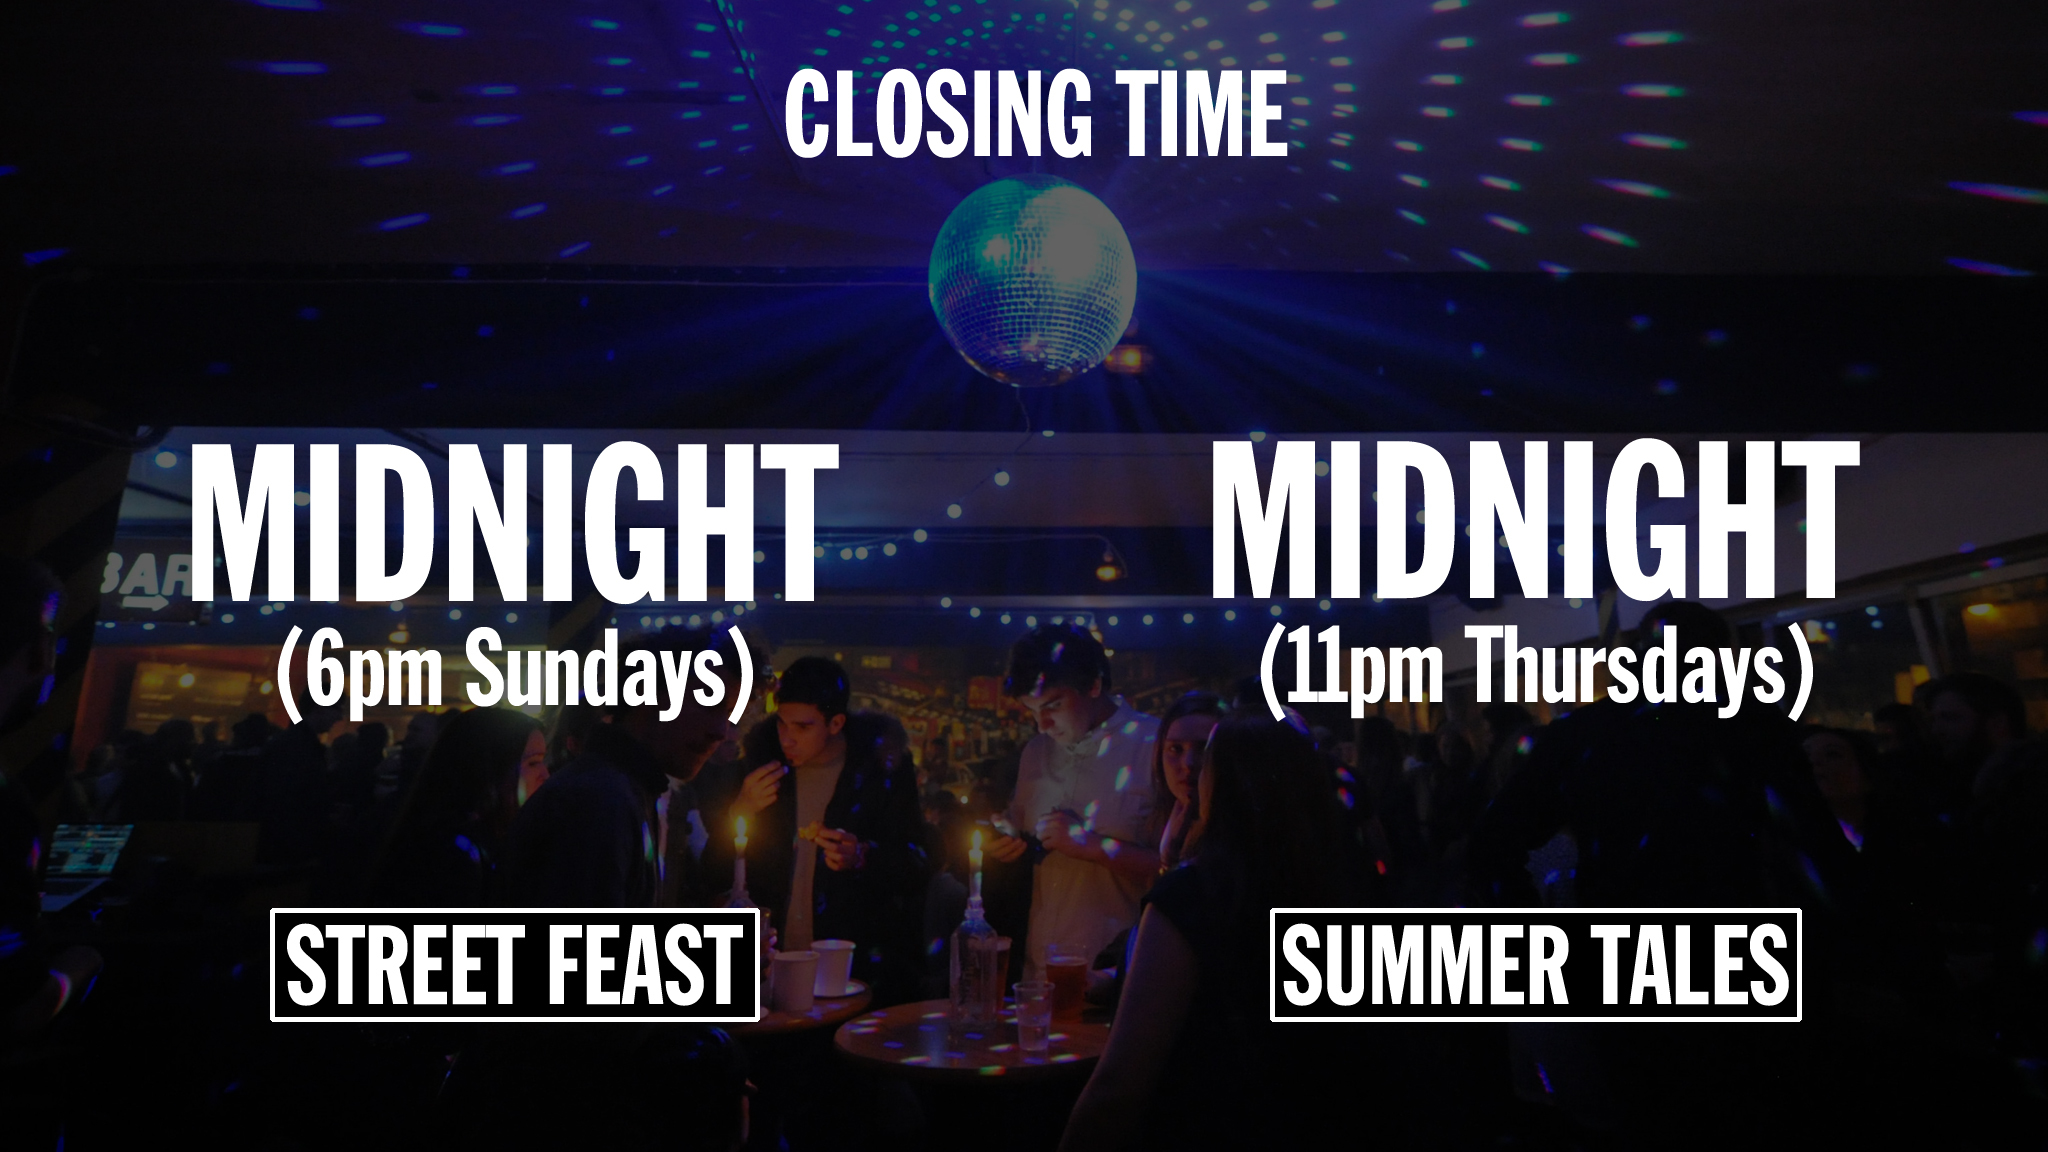 Street food infographic – closing time